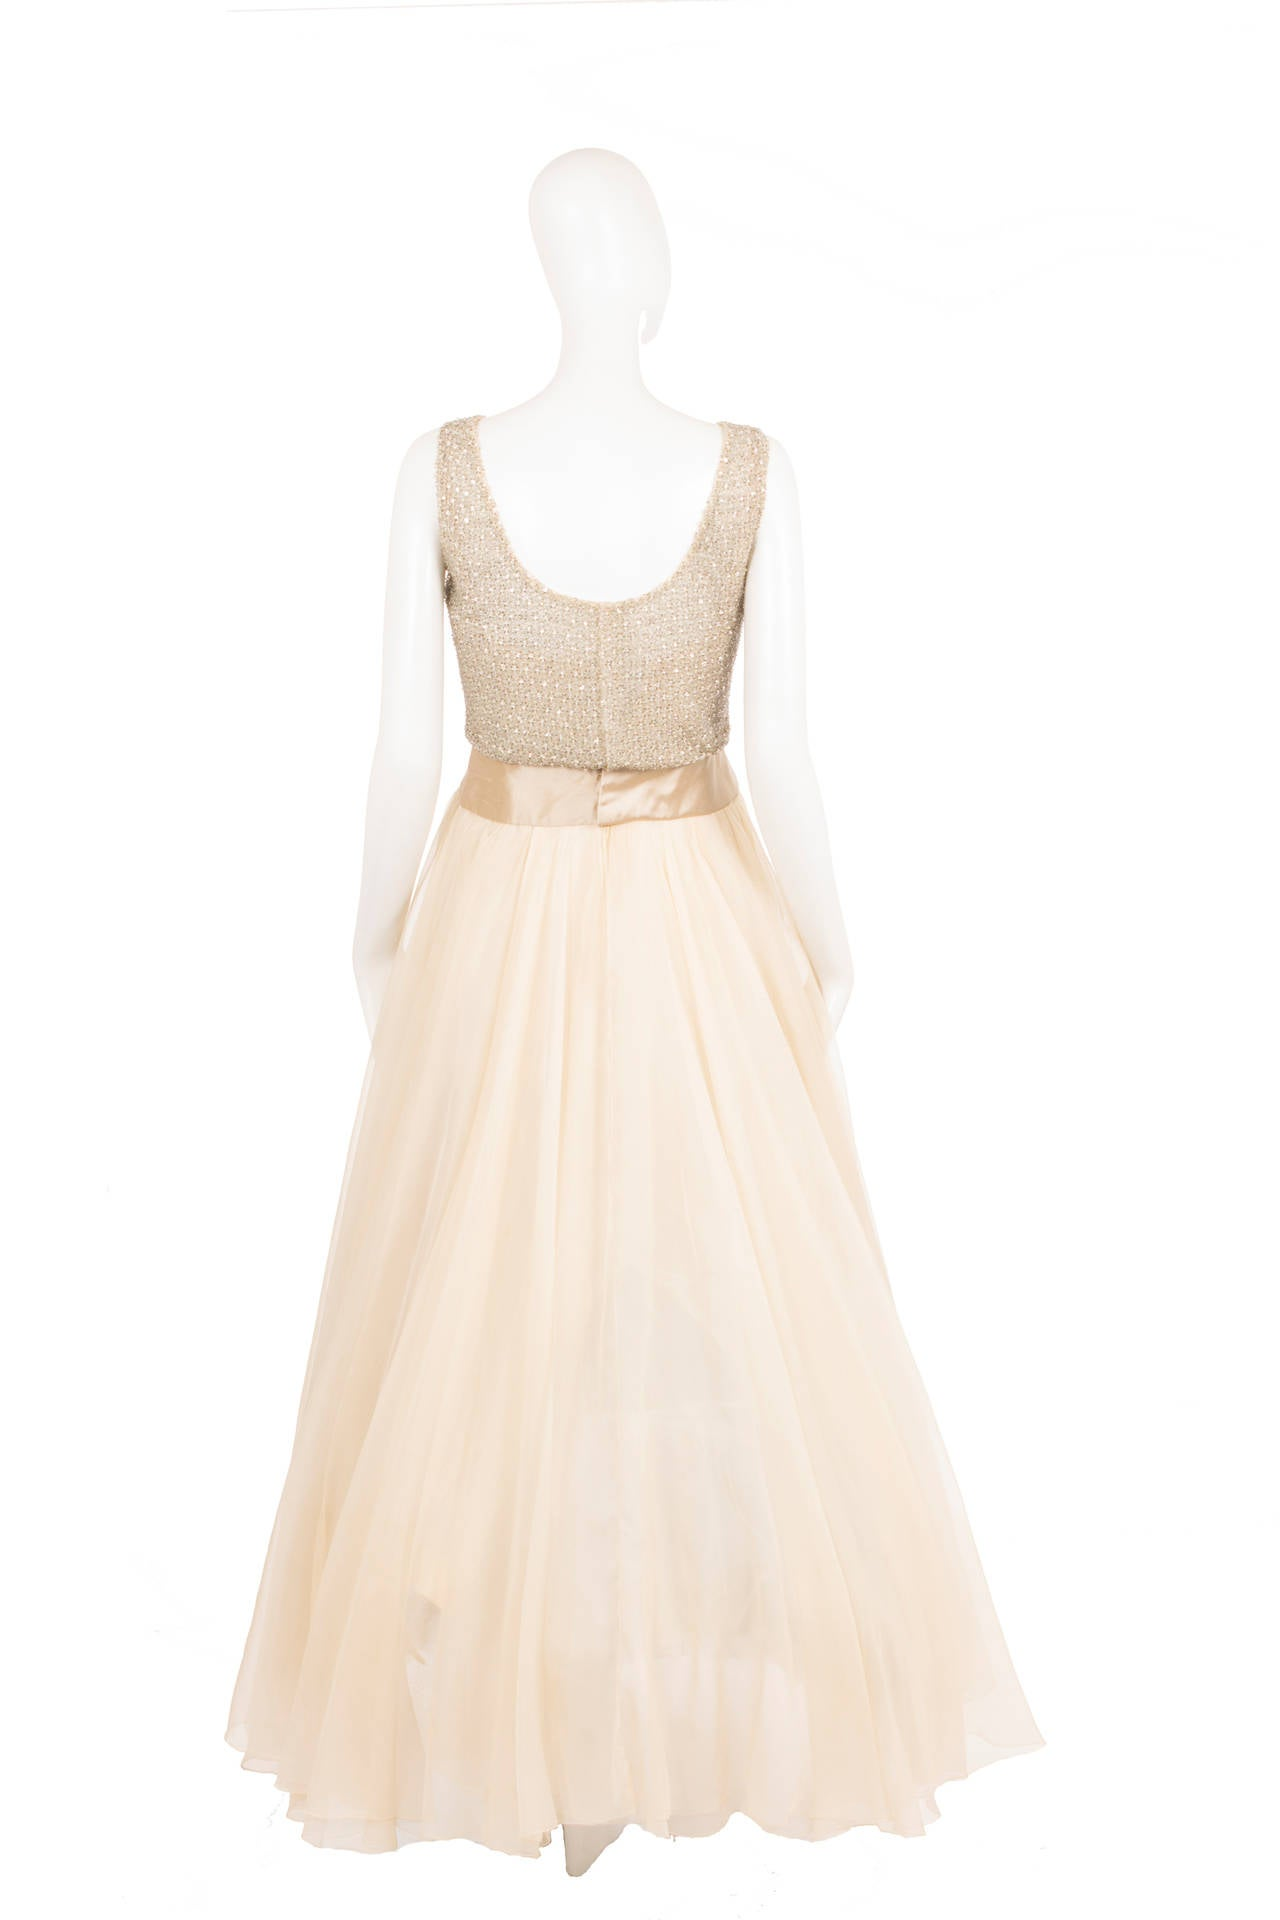 A dior haute couture dress spring summer 1961 for sale at for Haute couture sale